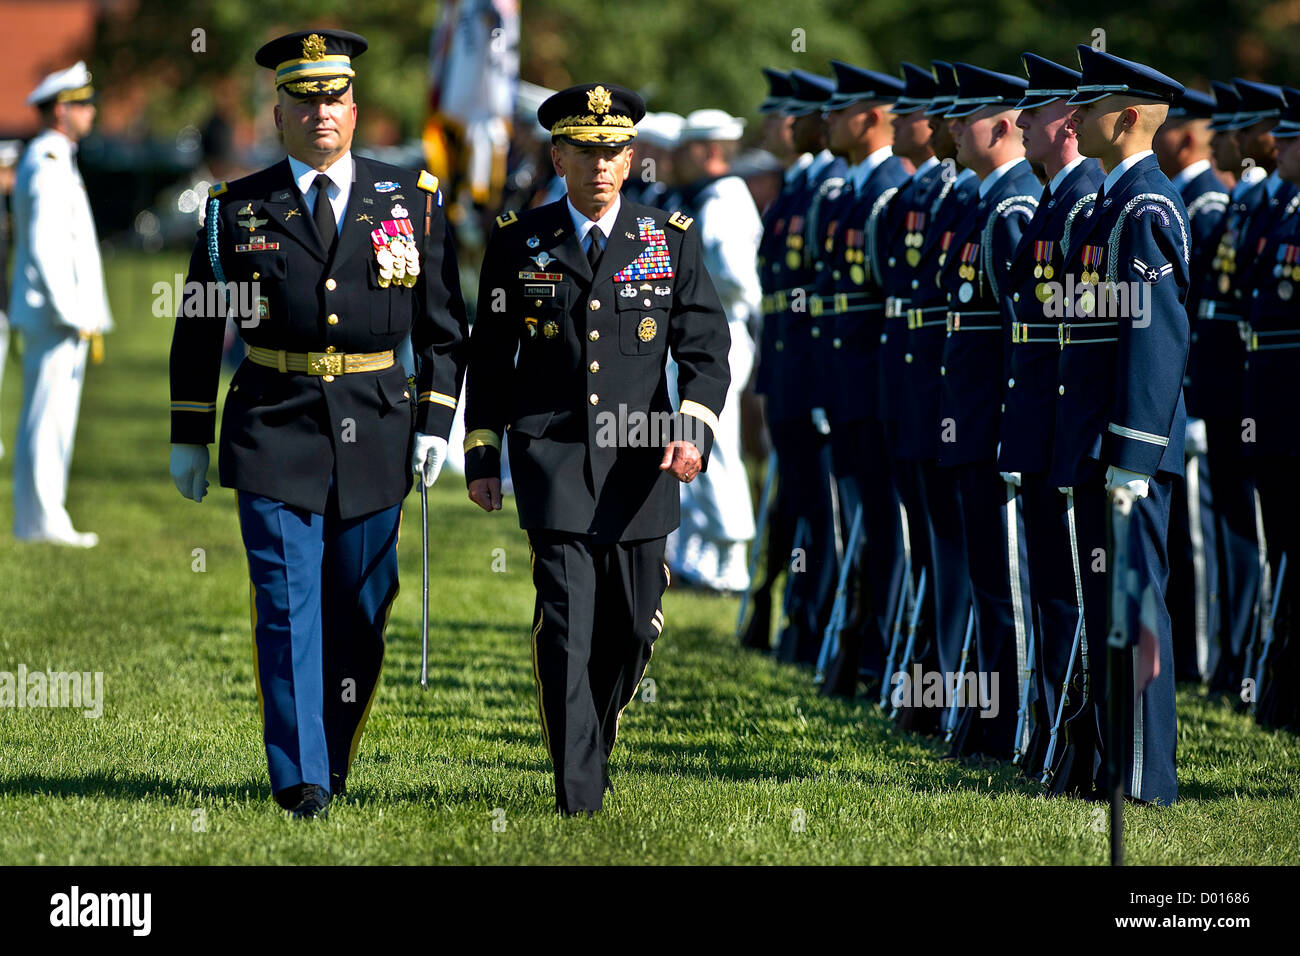 U.S. Army General David H. Petraeus reviews troops at his retirement ceremony and Armed Forces Farewell, - Stock Image